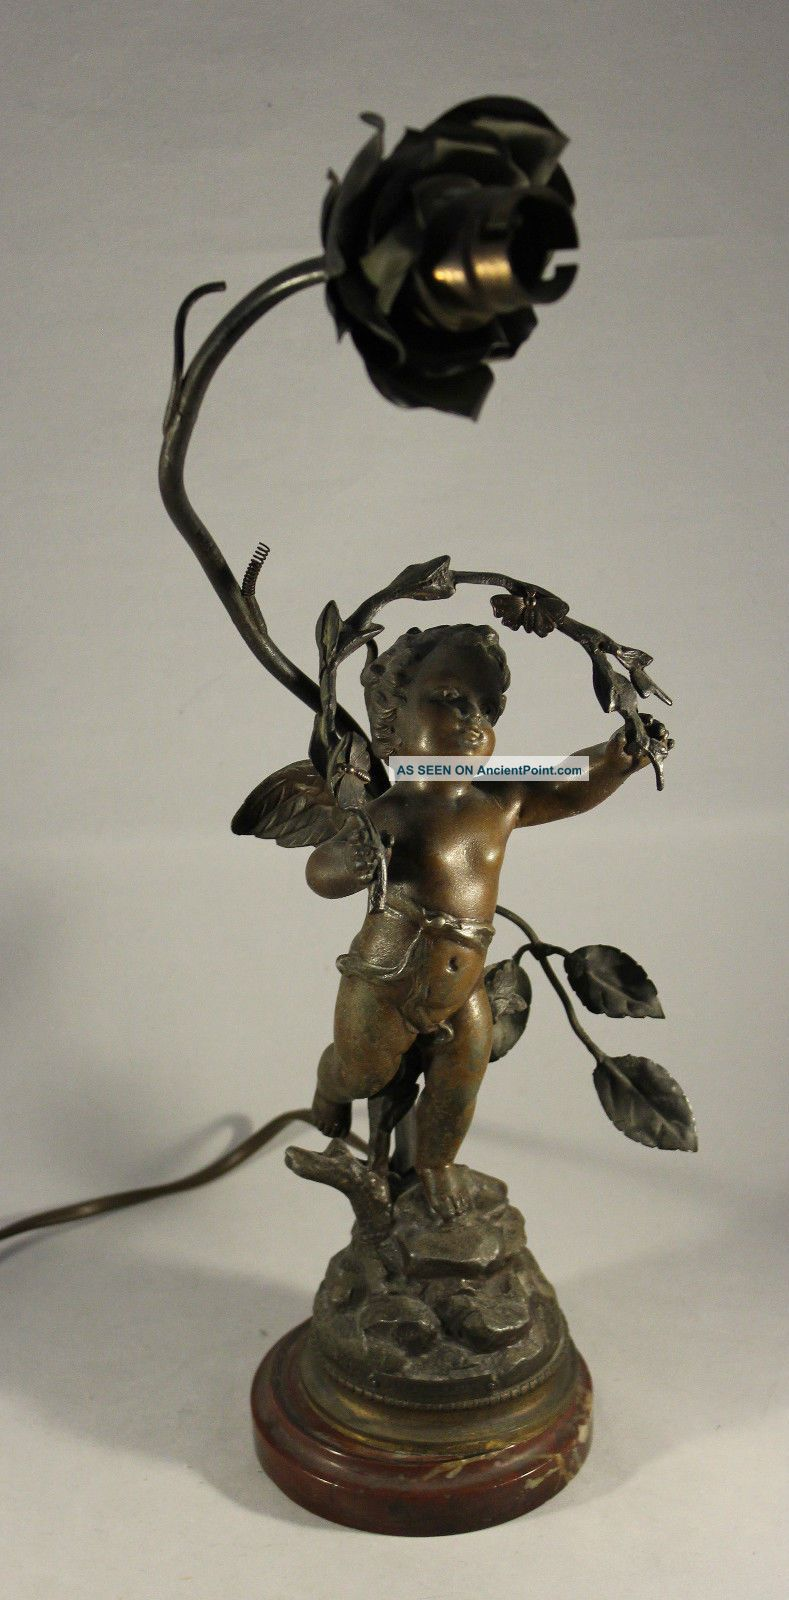 Antique Bronzed Spelter Cherub Lamp Innocence By Kossowski On Marble Plinth Edwardian (1901-1910) photo